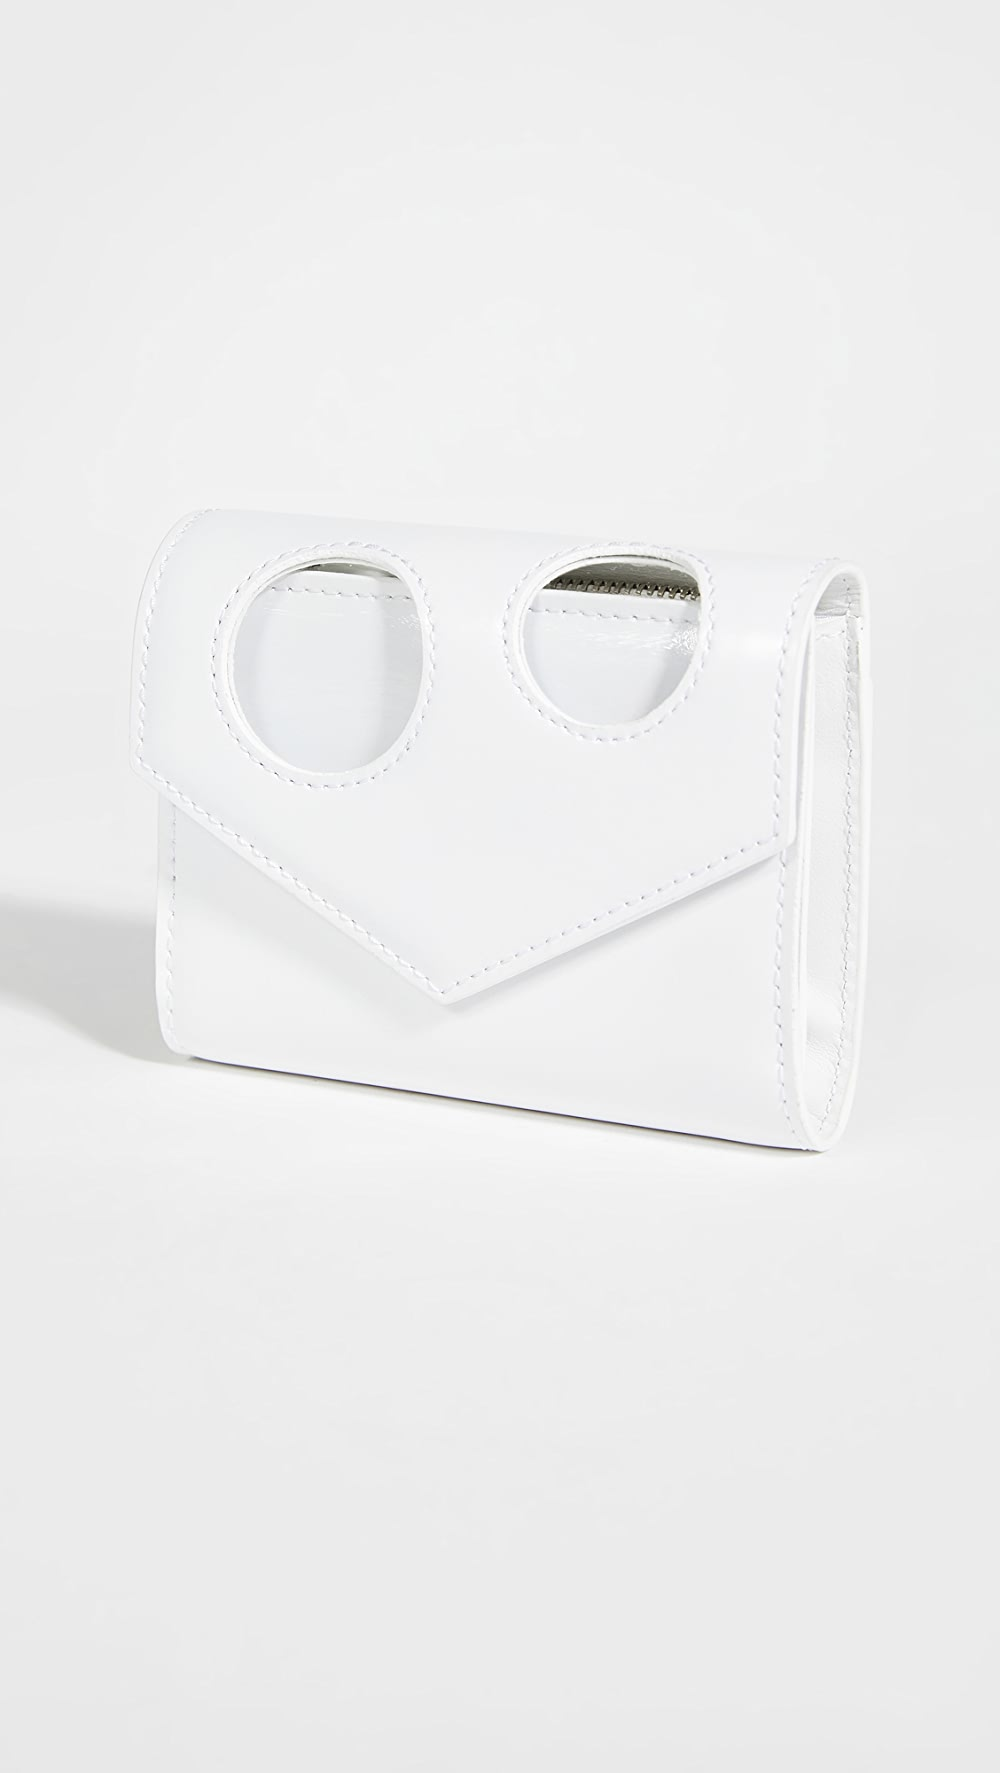 2019 Latest Design Off-white - Hole Small Wallet Buy One Give One